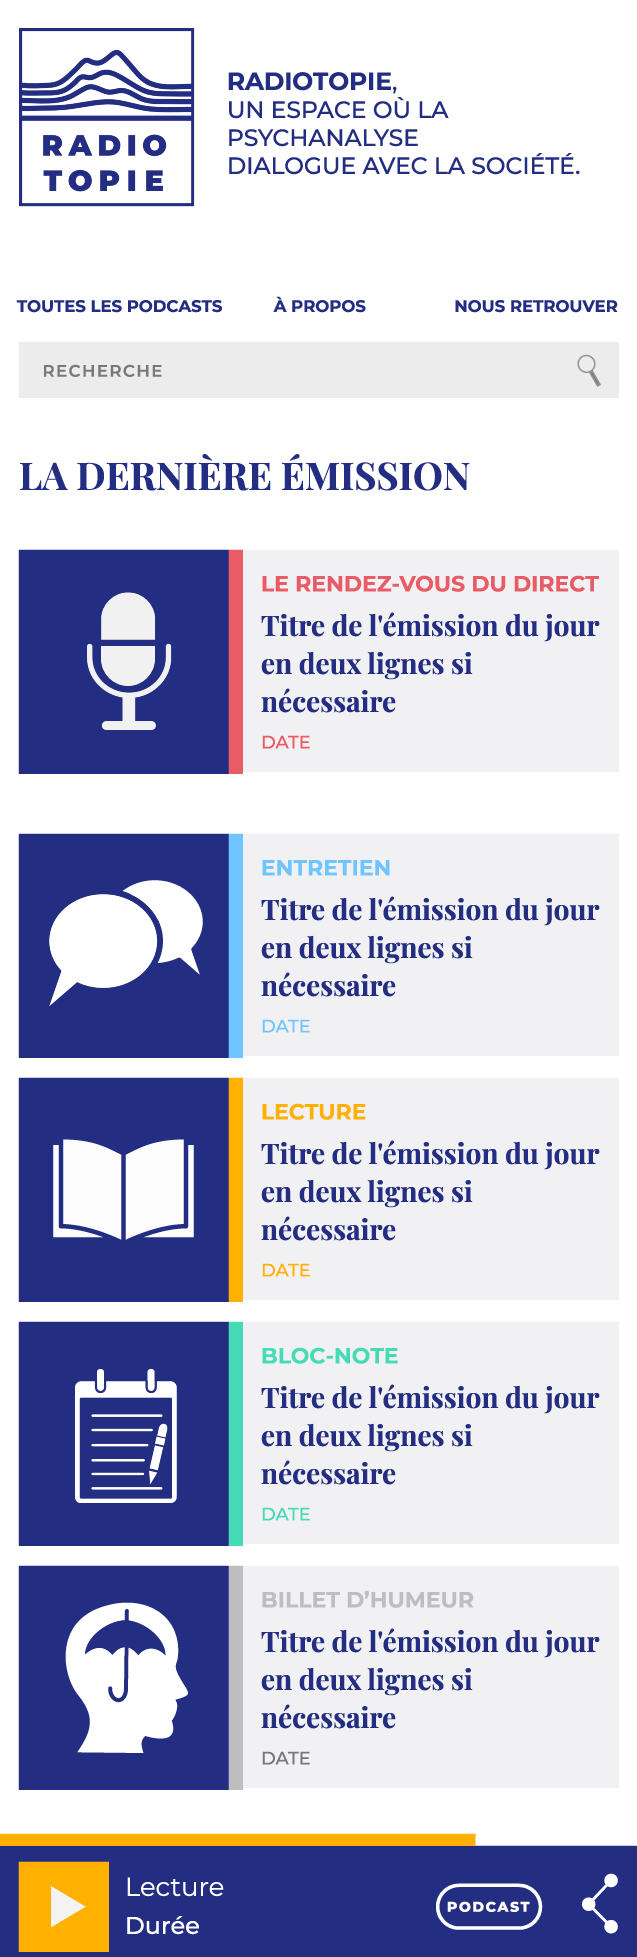 Page MOBILE ARTICLES